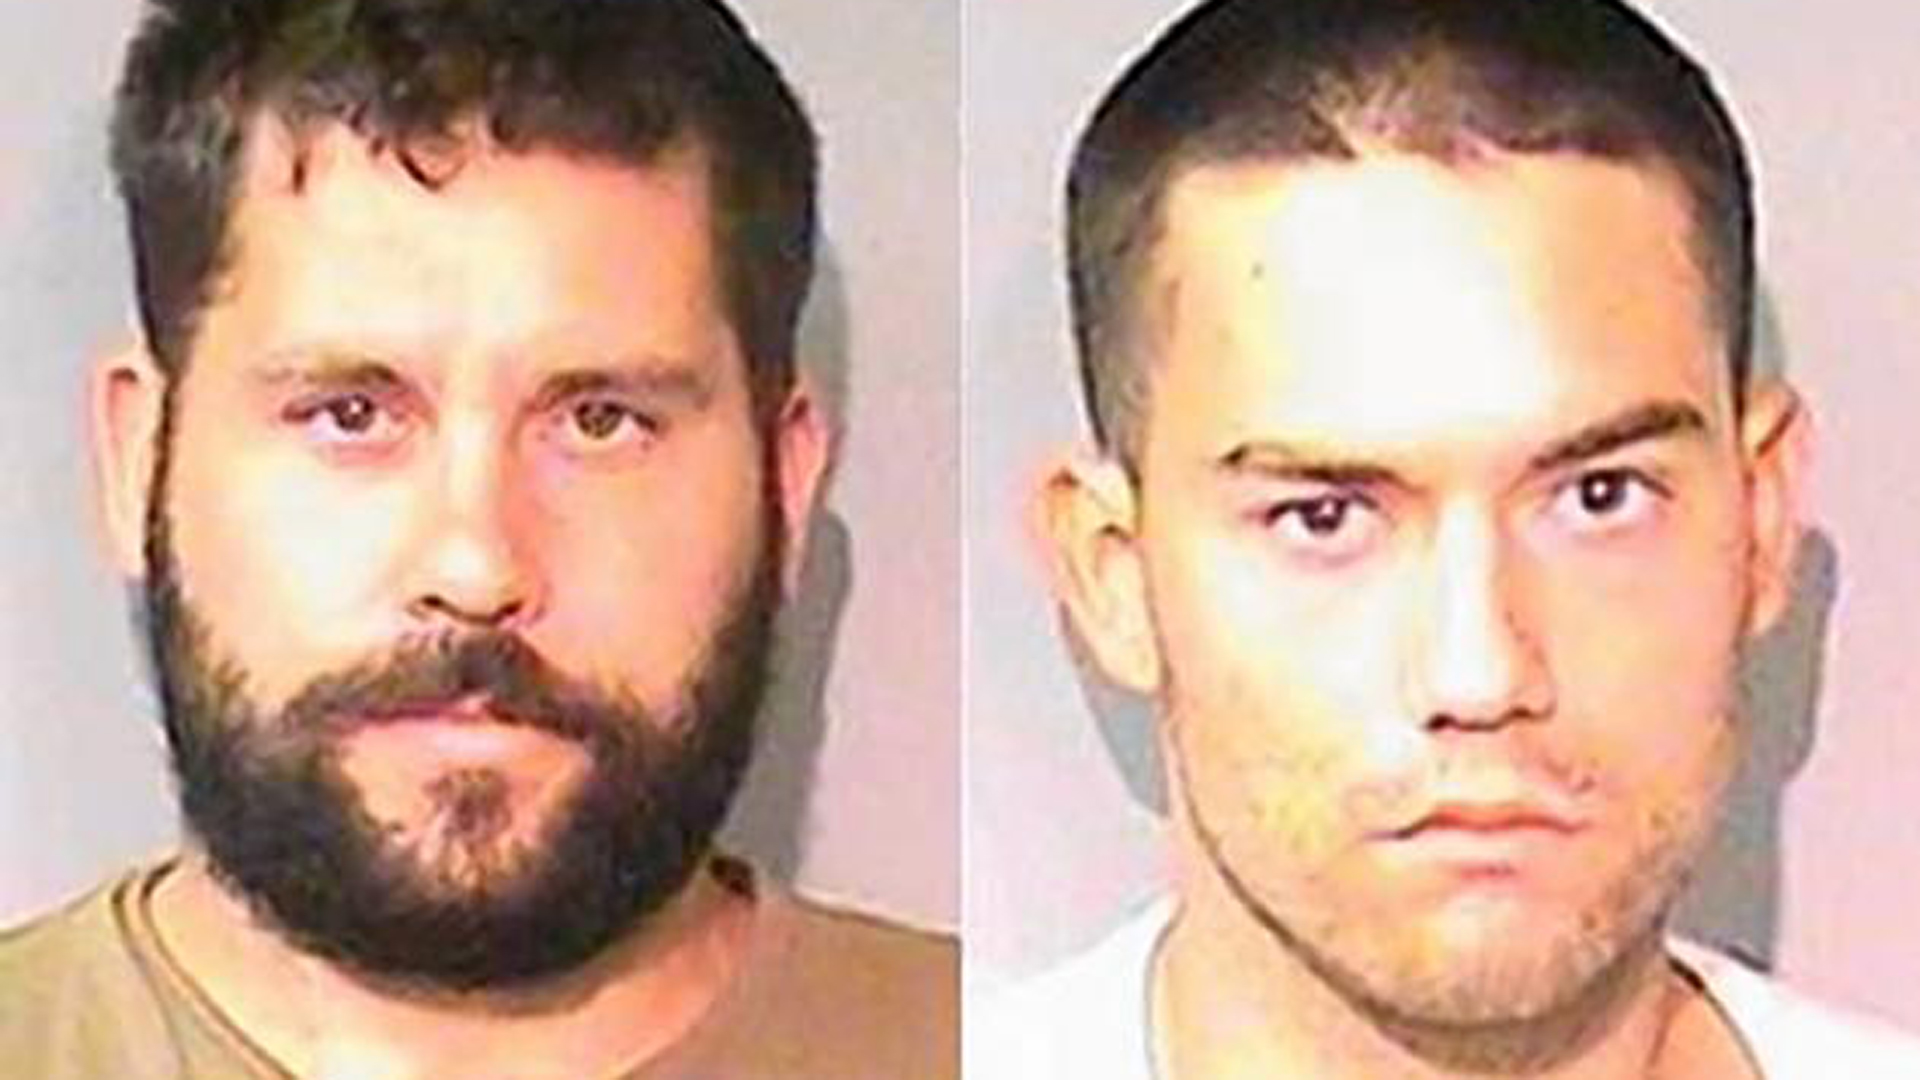 Ryan Balletto, left, and Patrick Pearmain are seen in booking photos released by the Lake County Sheriff's Office.